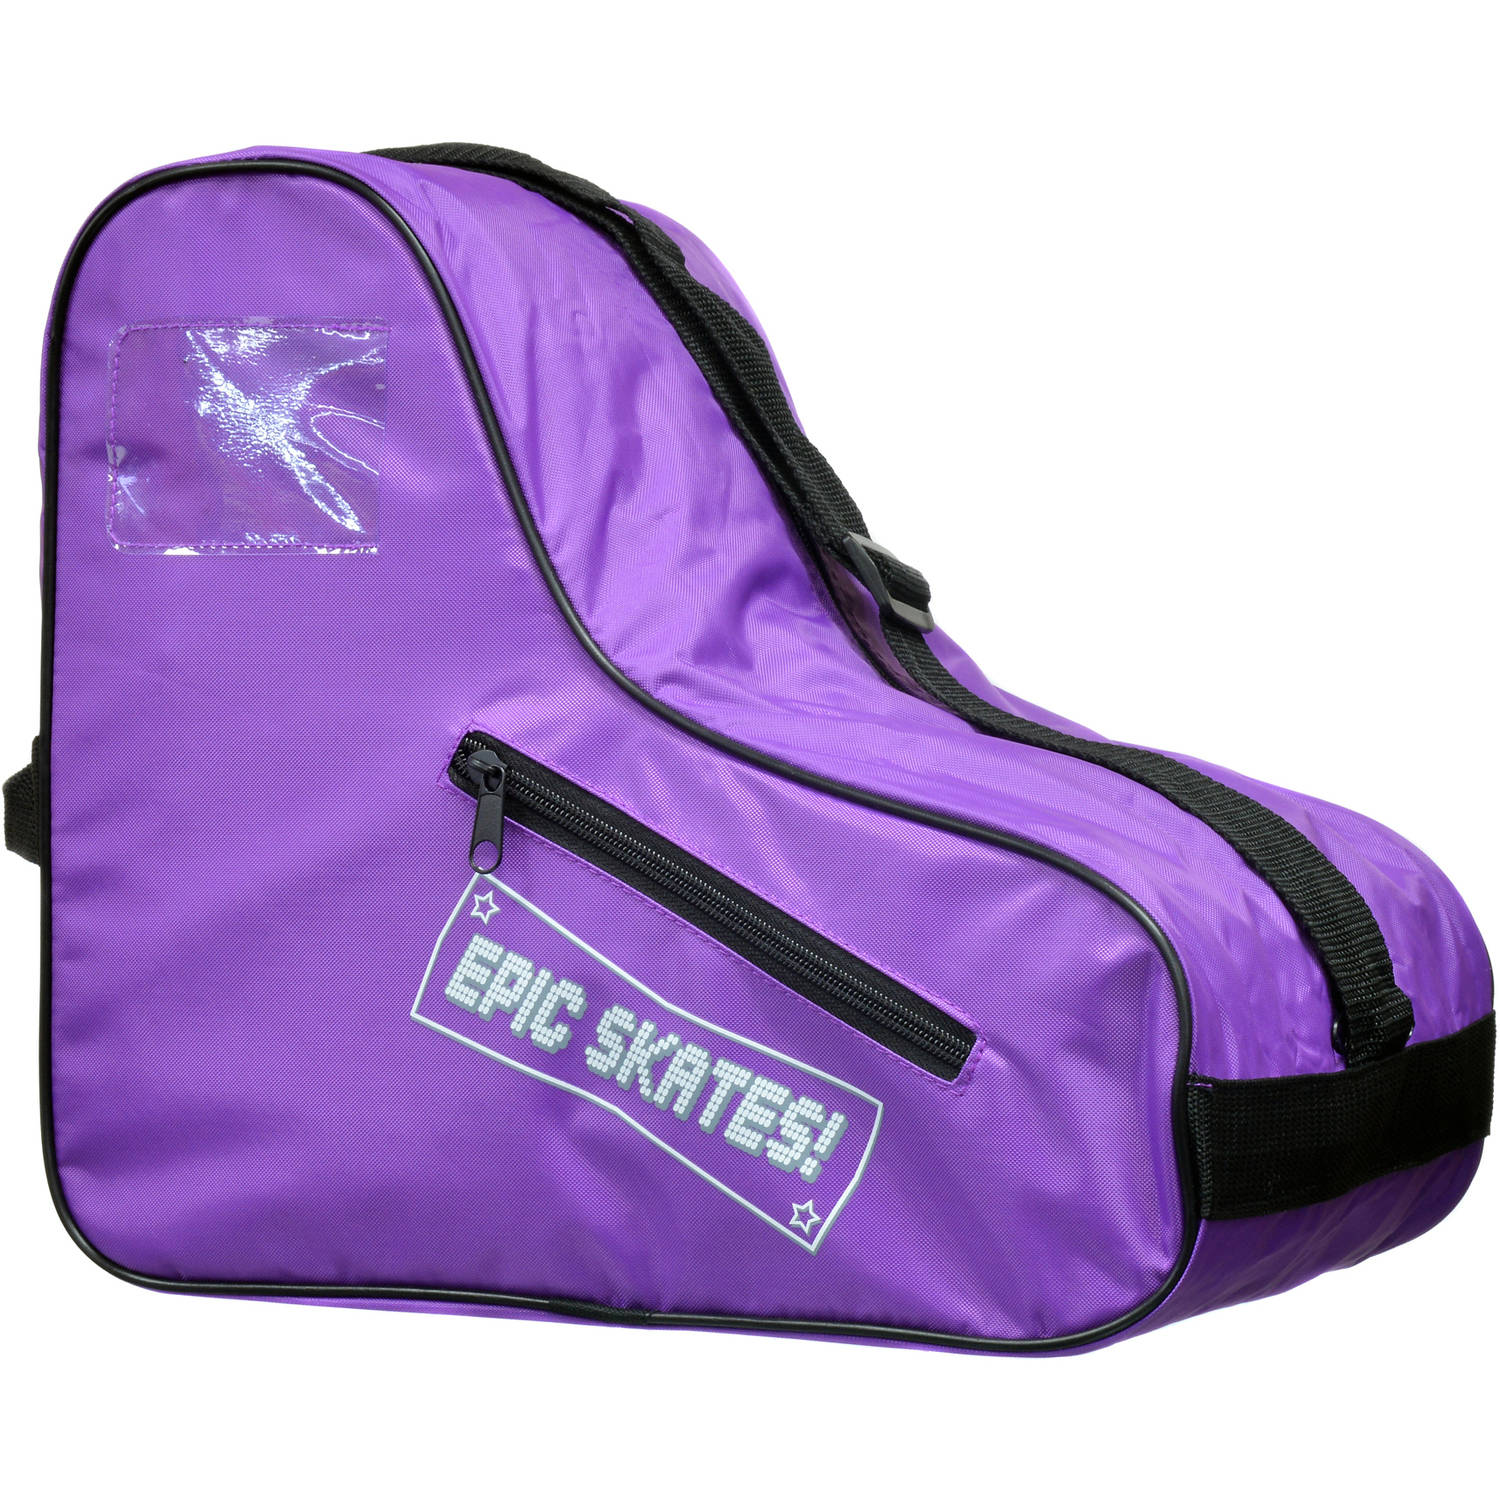 Epic Purple Roller Skate Bag by Epic Skates